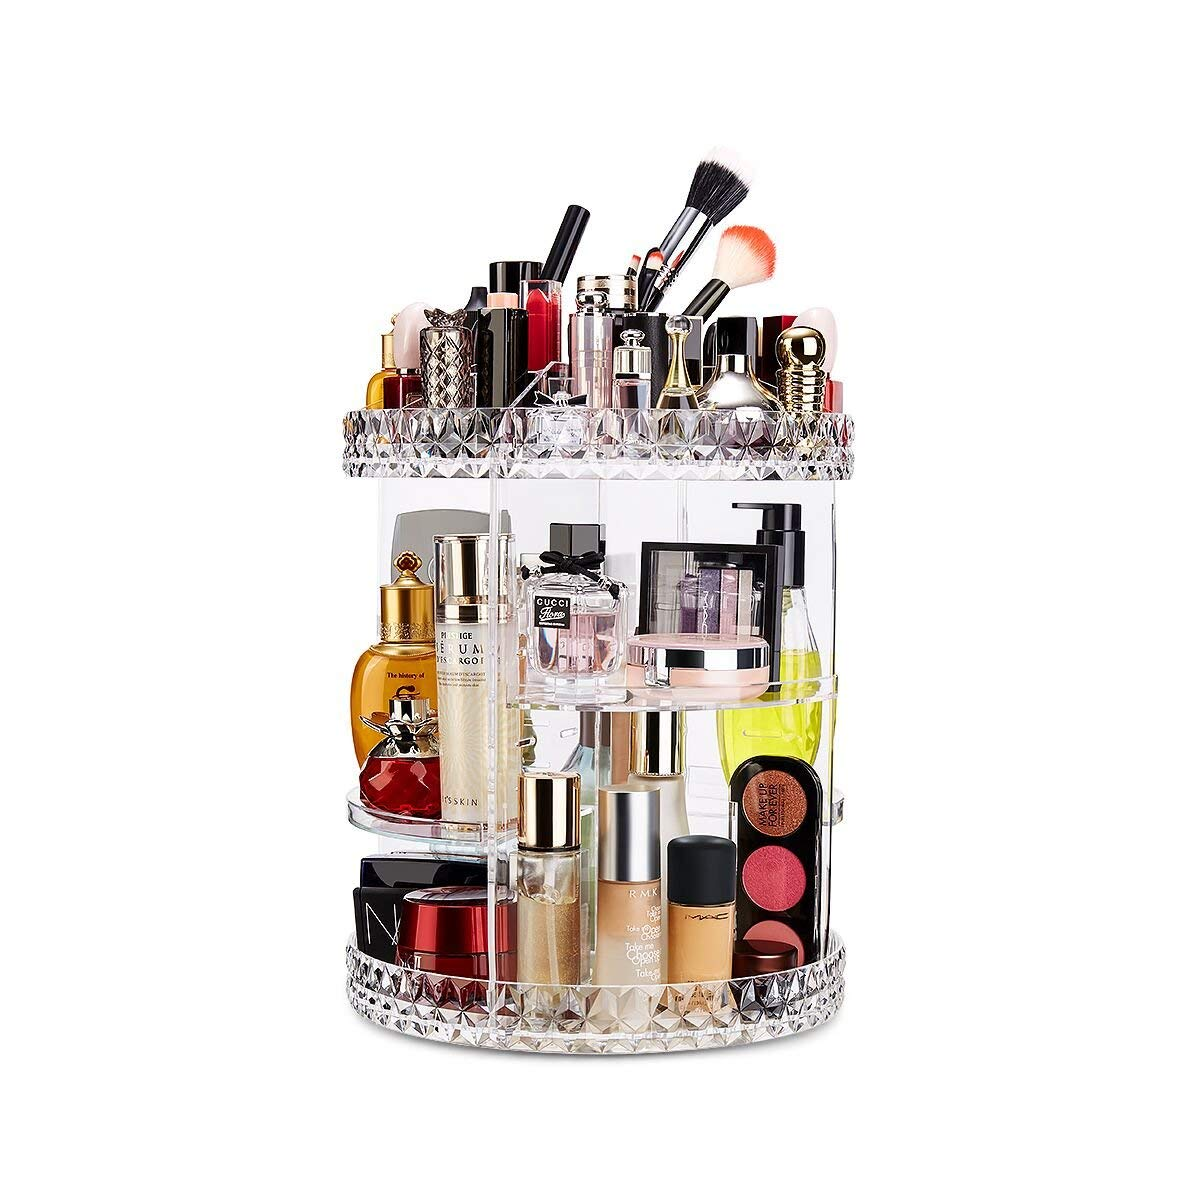 Inno-Crea Large Capacity Cosmetic Organizer, Kunststoff-Make-up-Organizer 360 Grad, drehender Make-up-Organisator